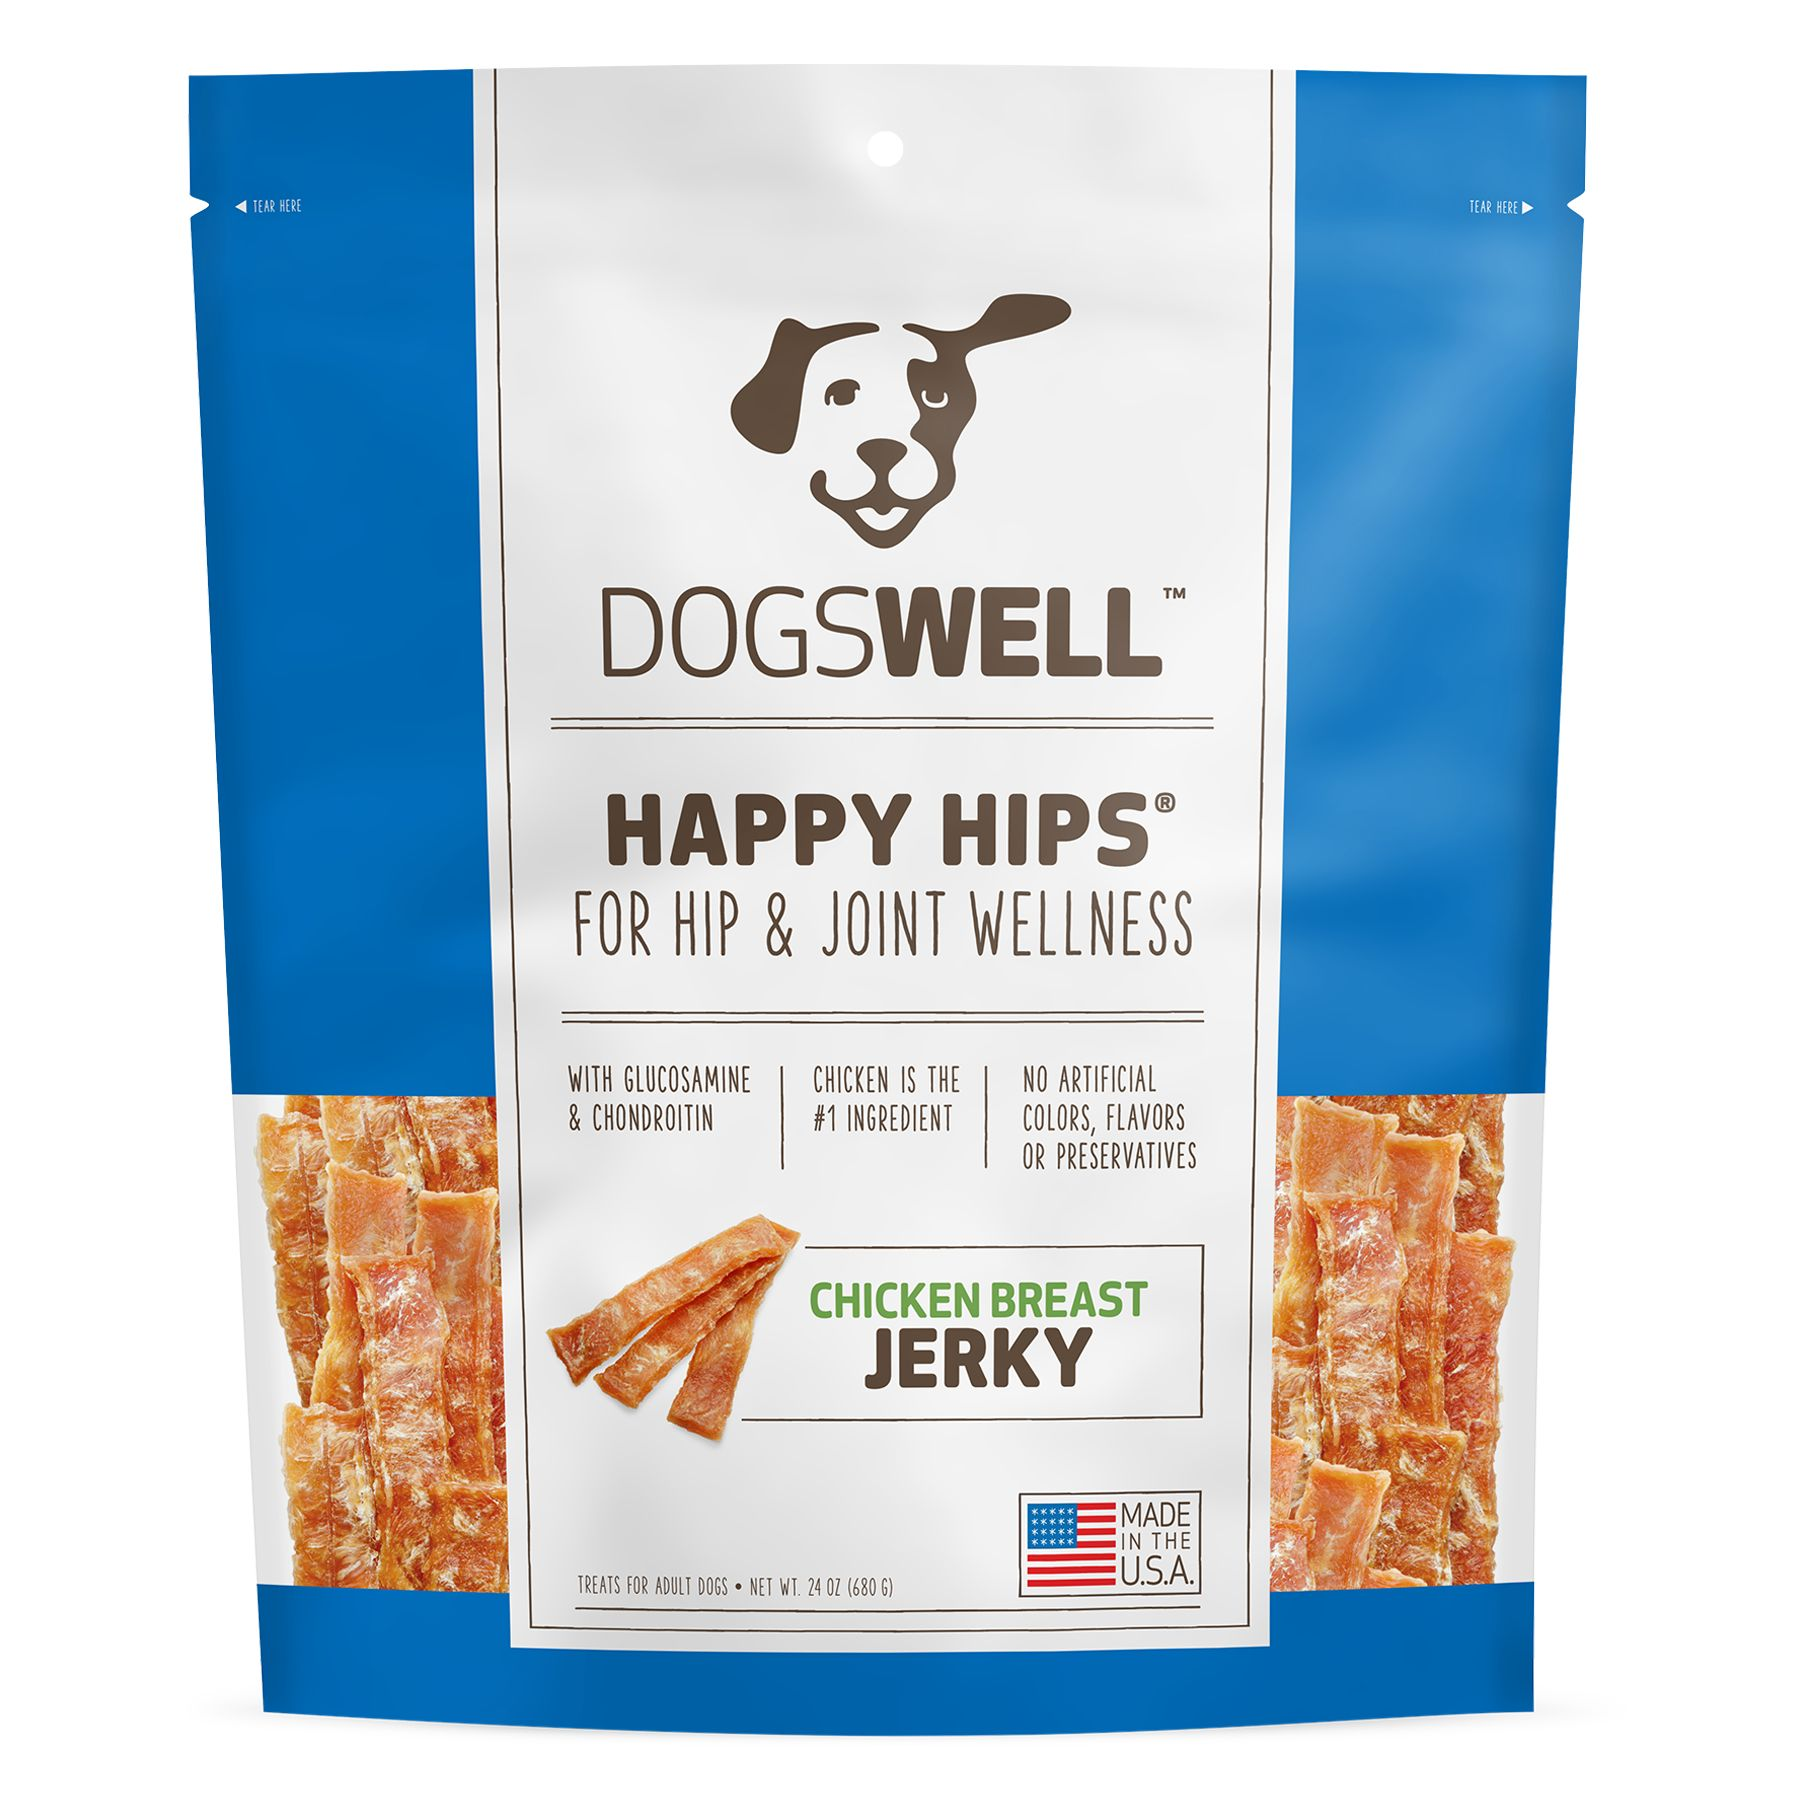 Dogswell Happy Hips Dog Treat Hip And Joint Health Chicken Breast Jerky Size 24 Oz